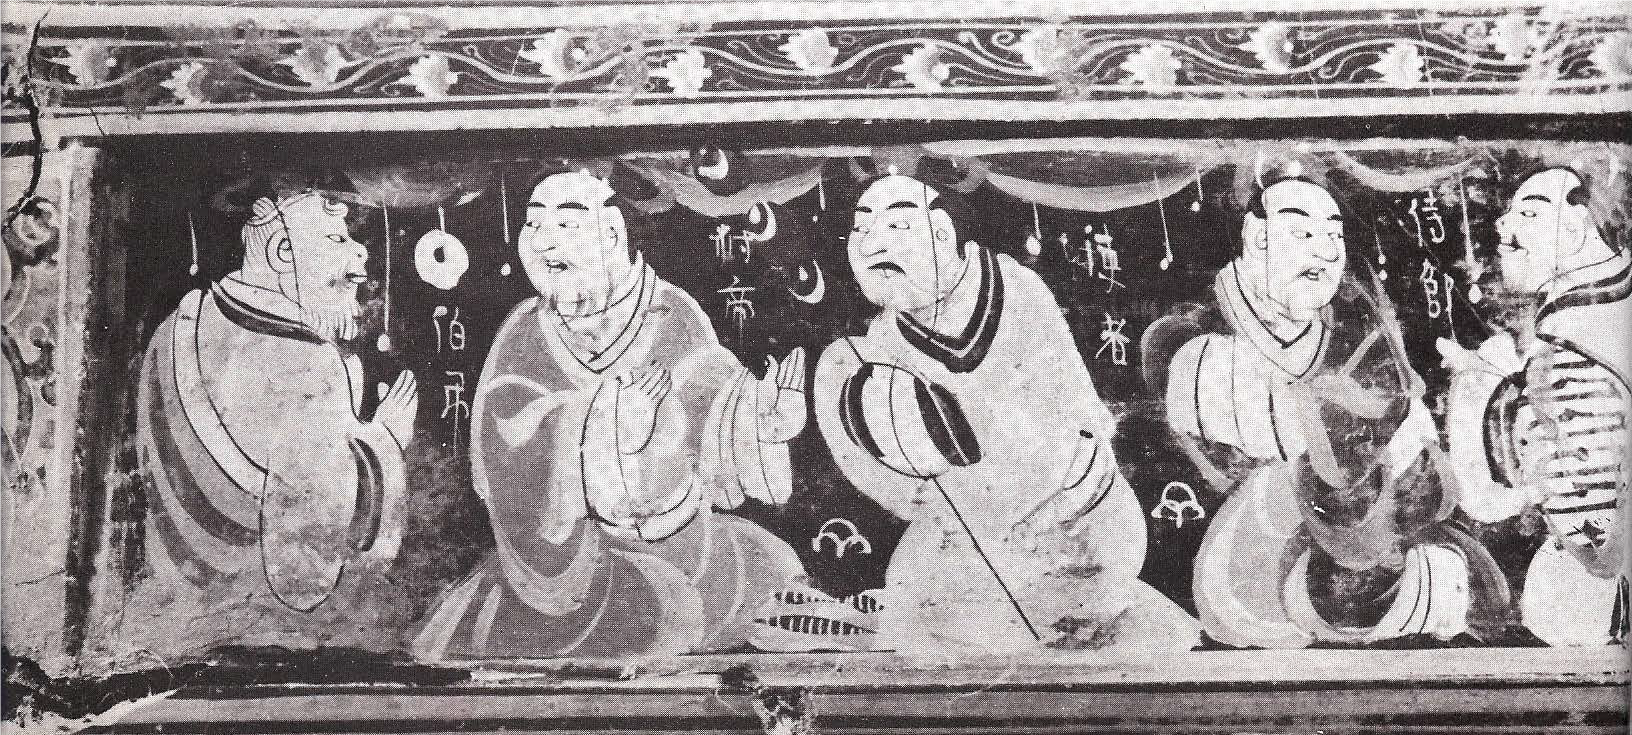 the corrupt political system during the han dynasty exposed by wang fu